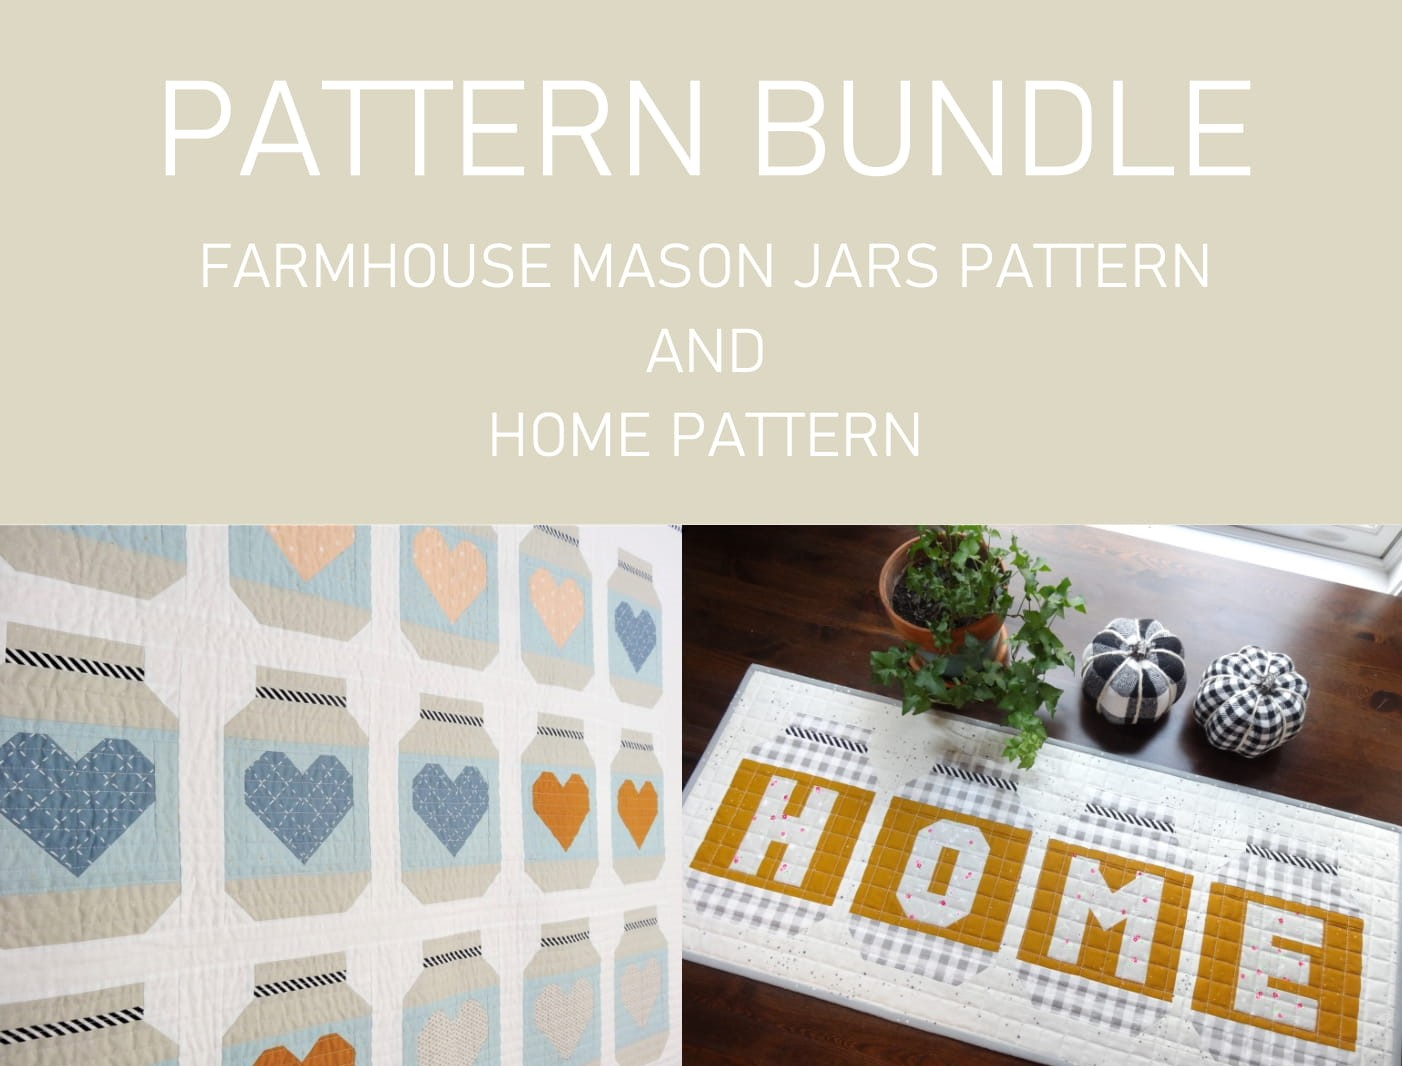 010_011_PATTERN BUNDLE COVER-1